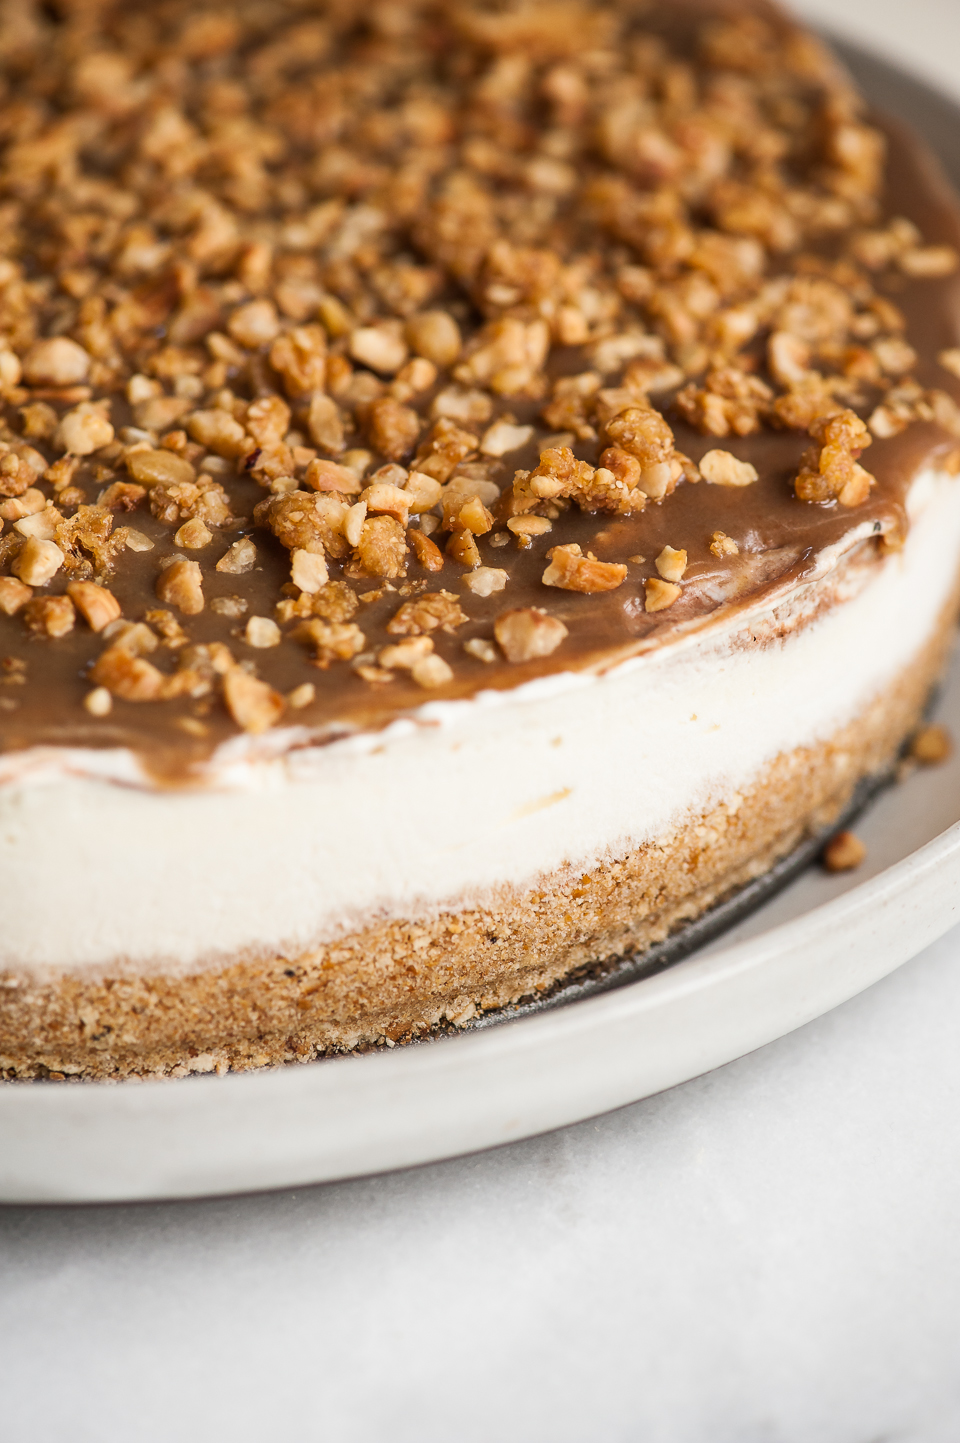 No Bake Chocolate Caramel Cheesecake with Brown Butter Pretzel Crust ...